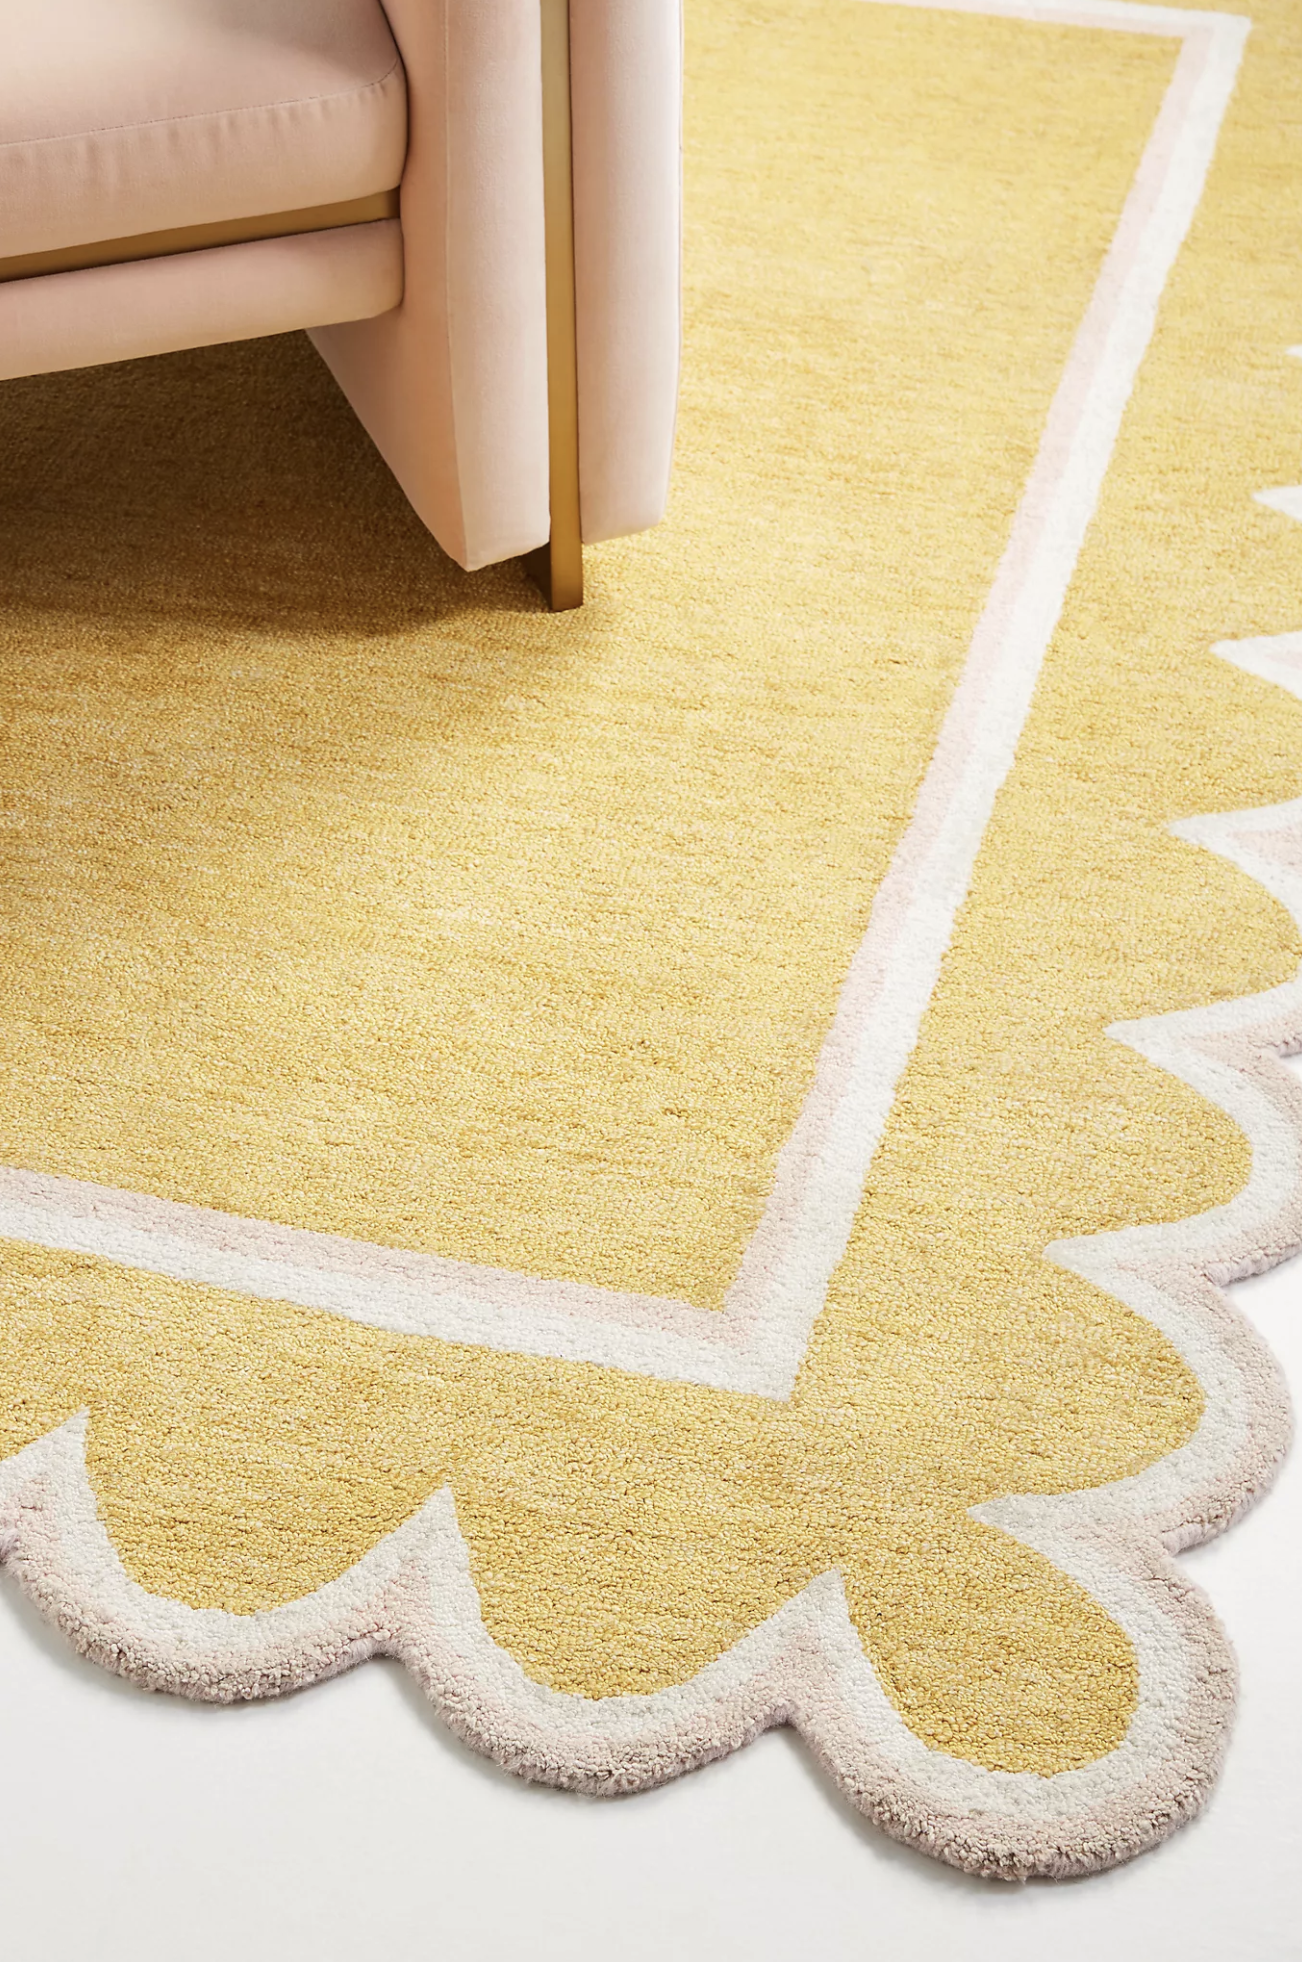 21 Stylish 8'x10' Mid-Century Modern Rugs feat. Hand-Tufted Scallop Rug – Maize via Anthropologie